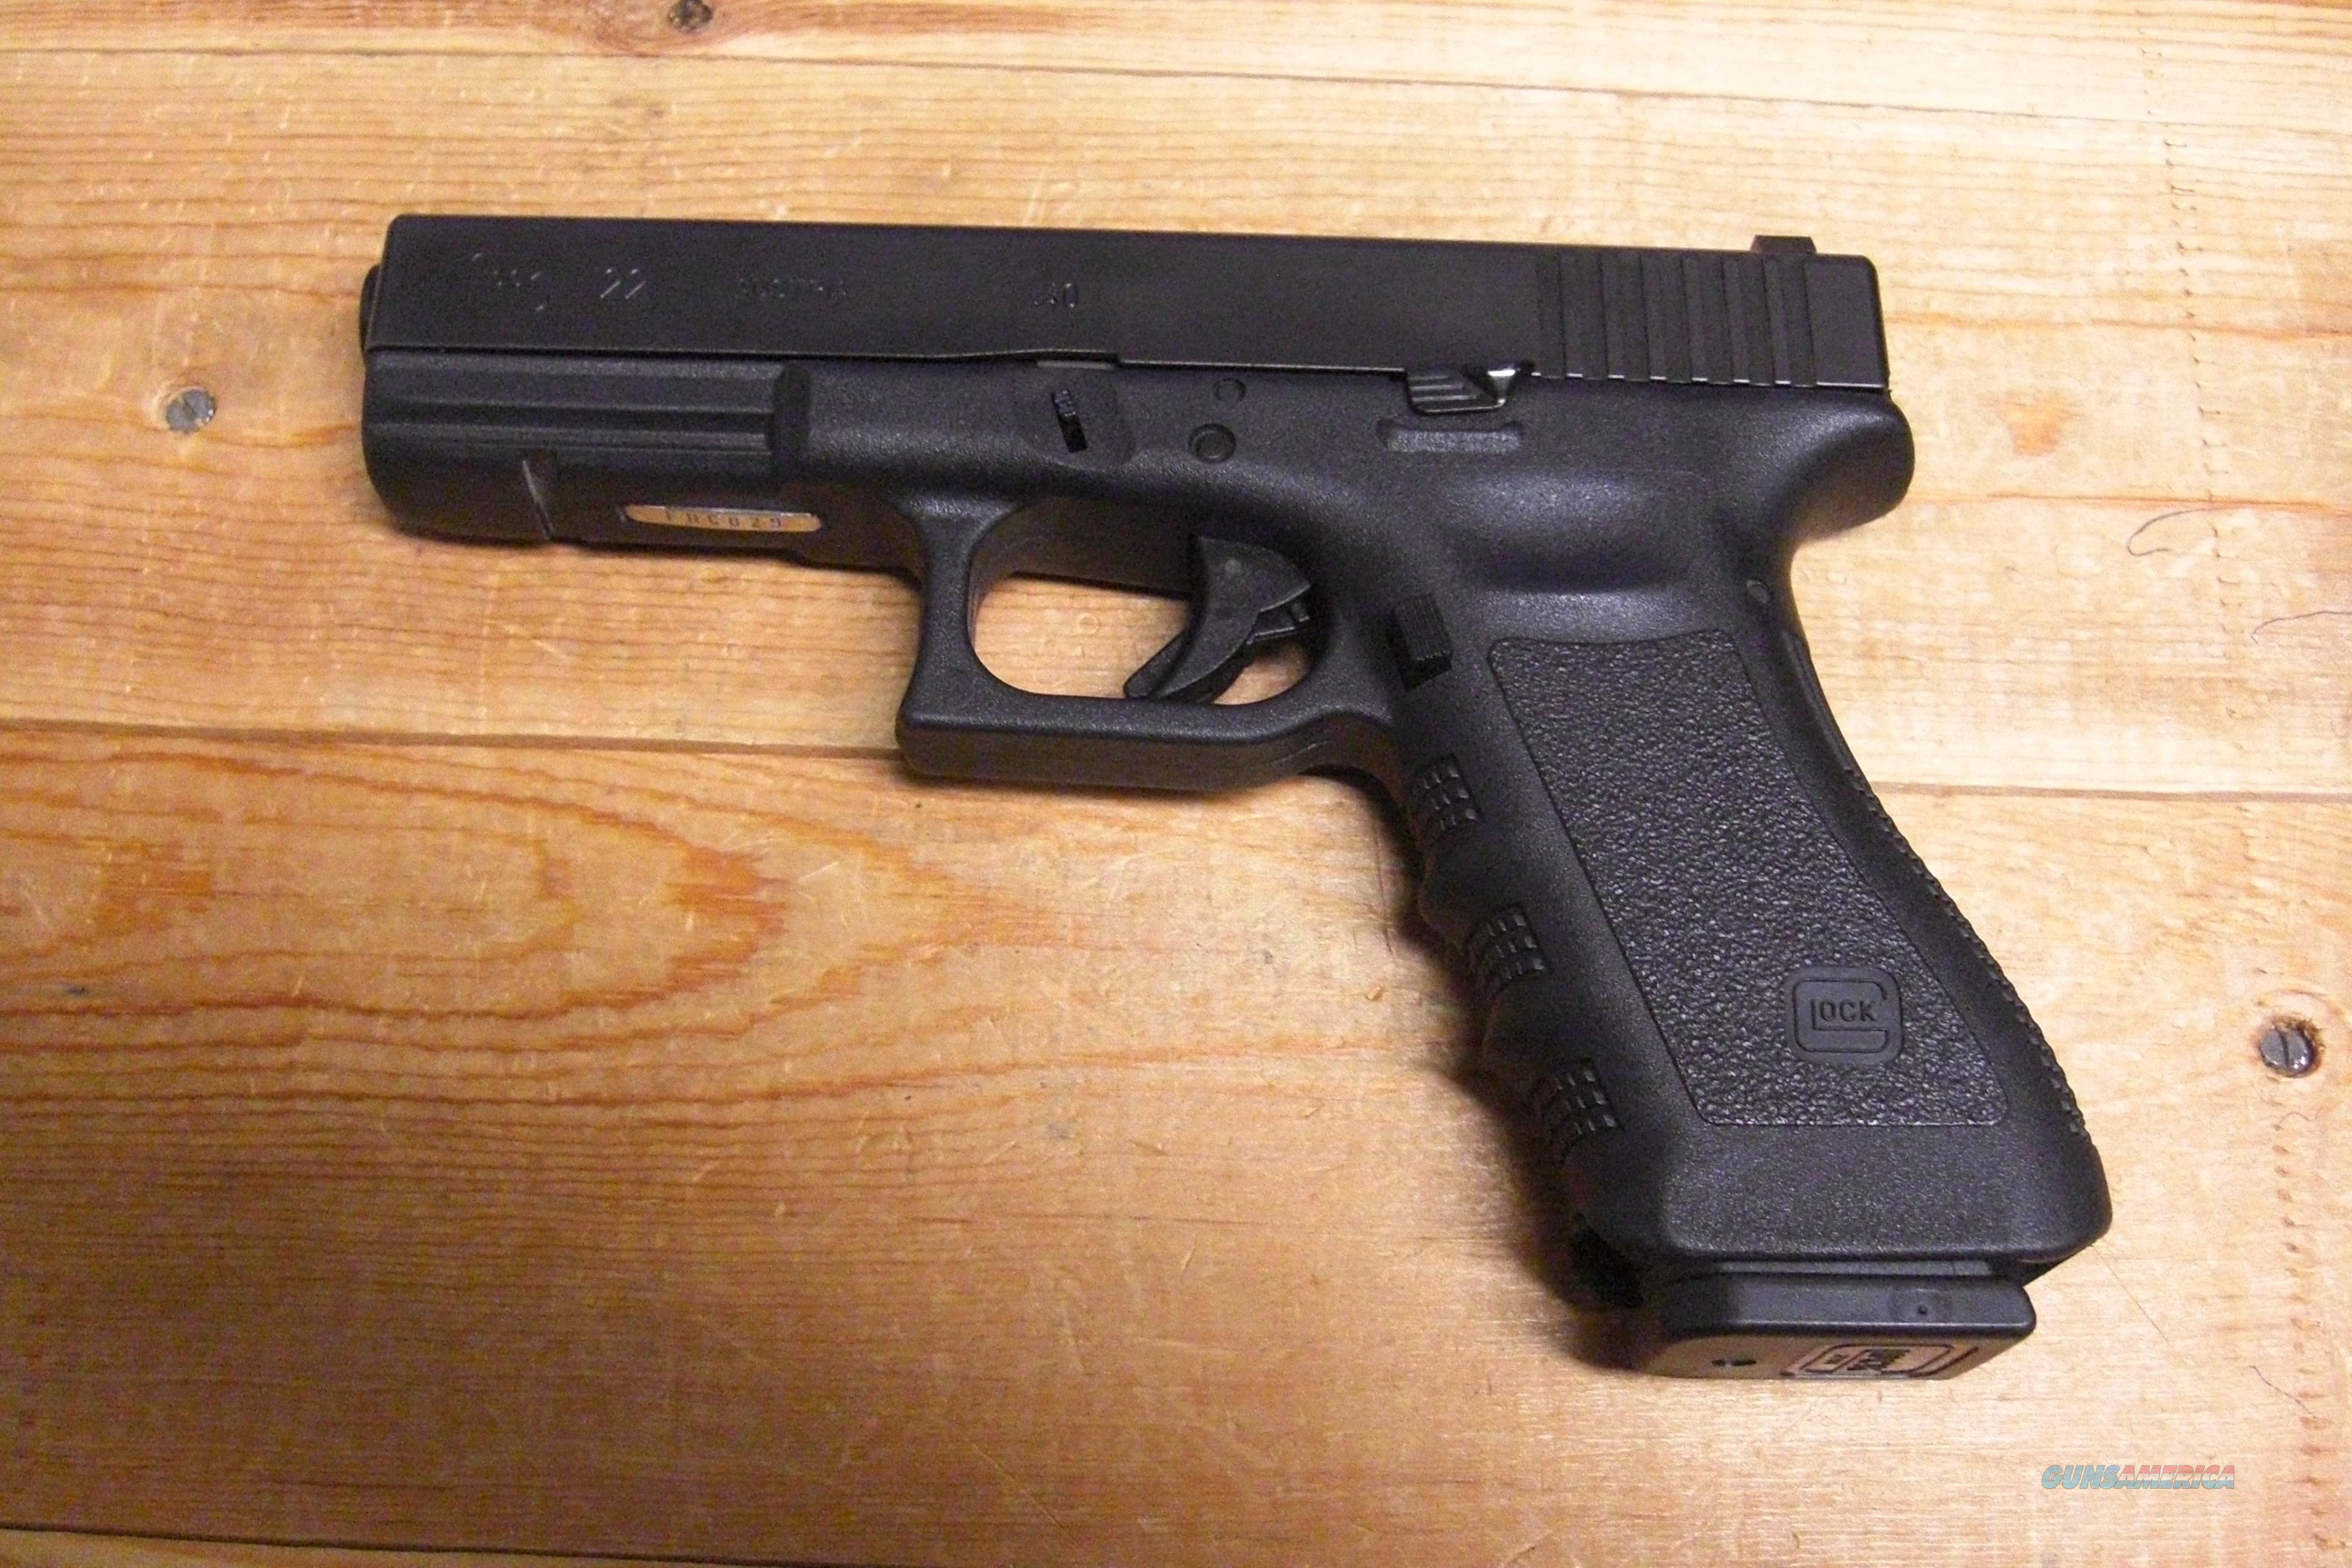 Glock 22 w/faint night sights, extended mag release, extended slide release  Guns > Pistols > Glock Pistols > 22